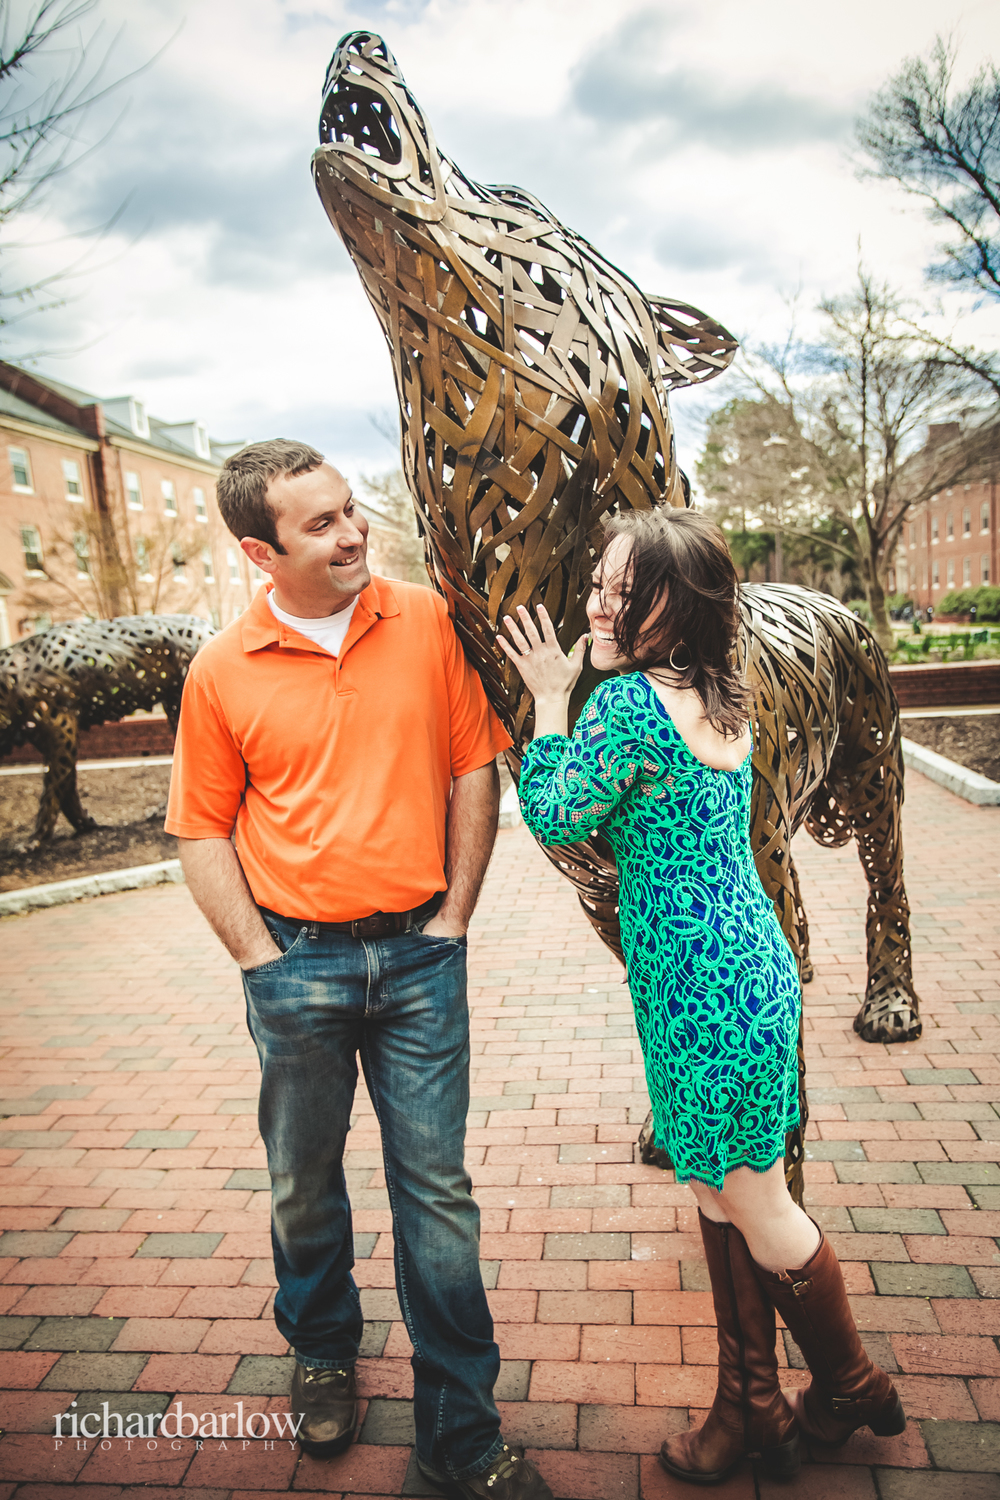 richard barlow photography - Jason and Karen Engagement Session NC State-13